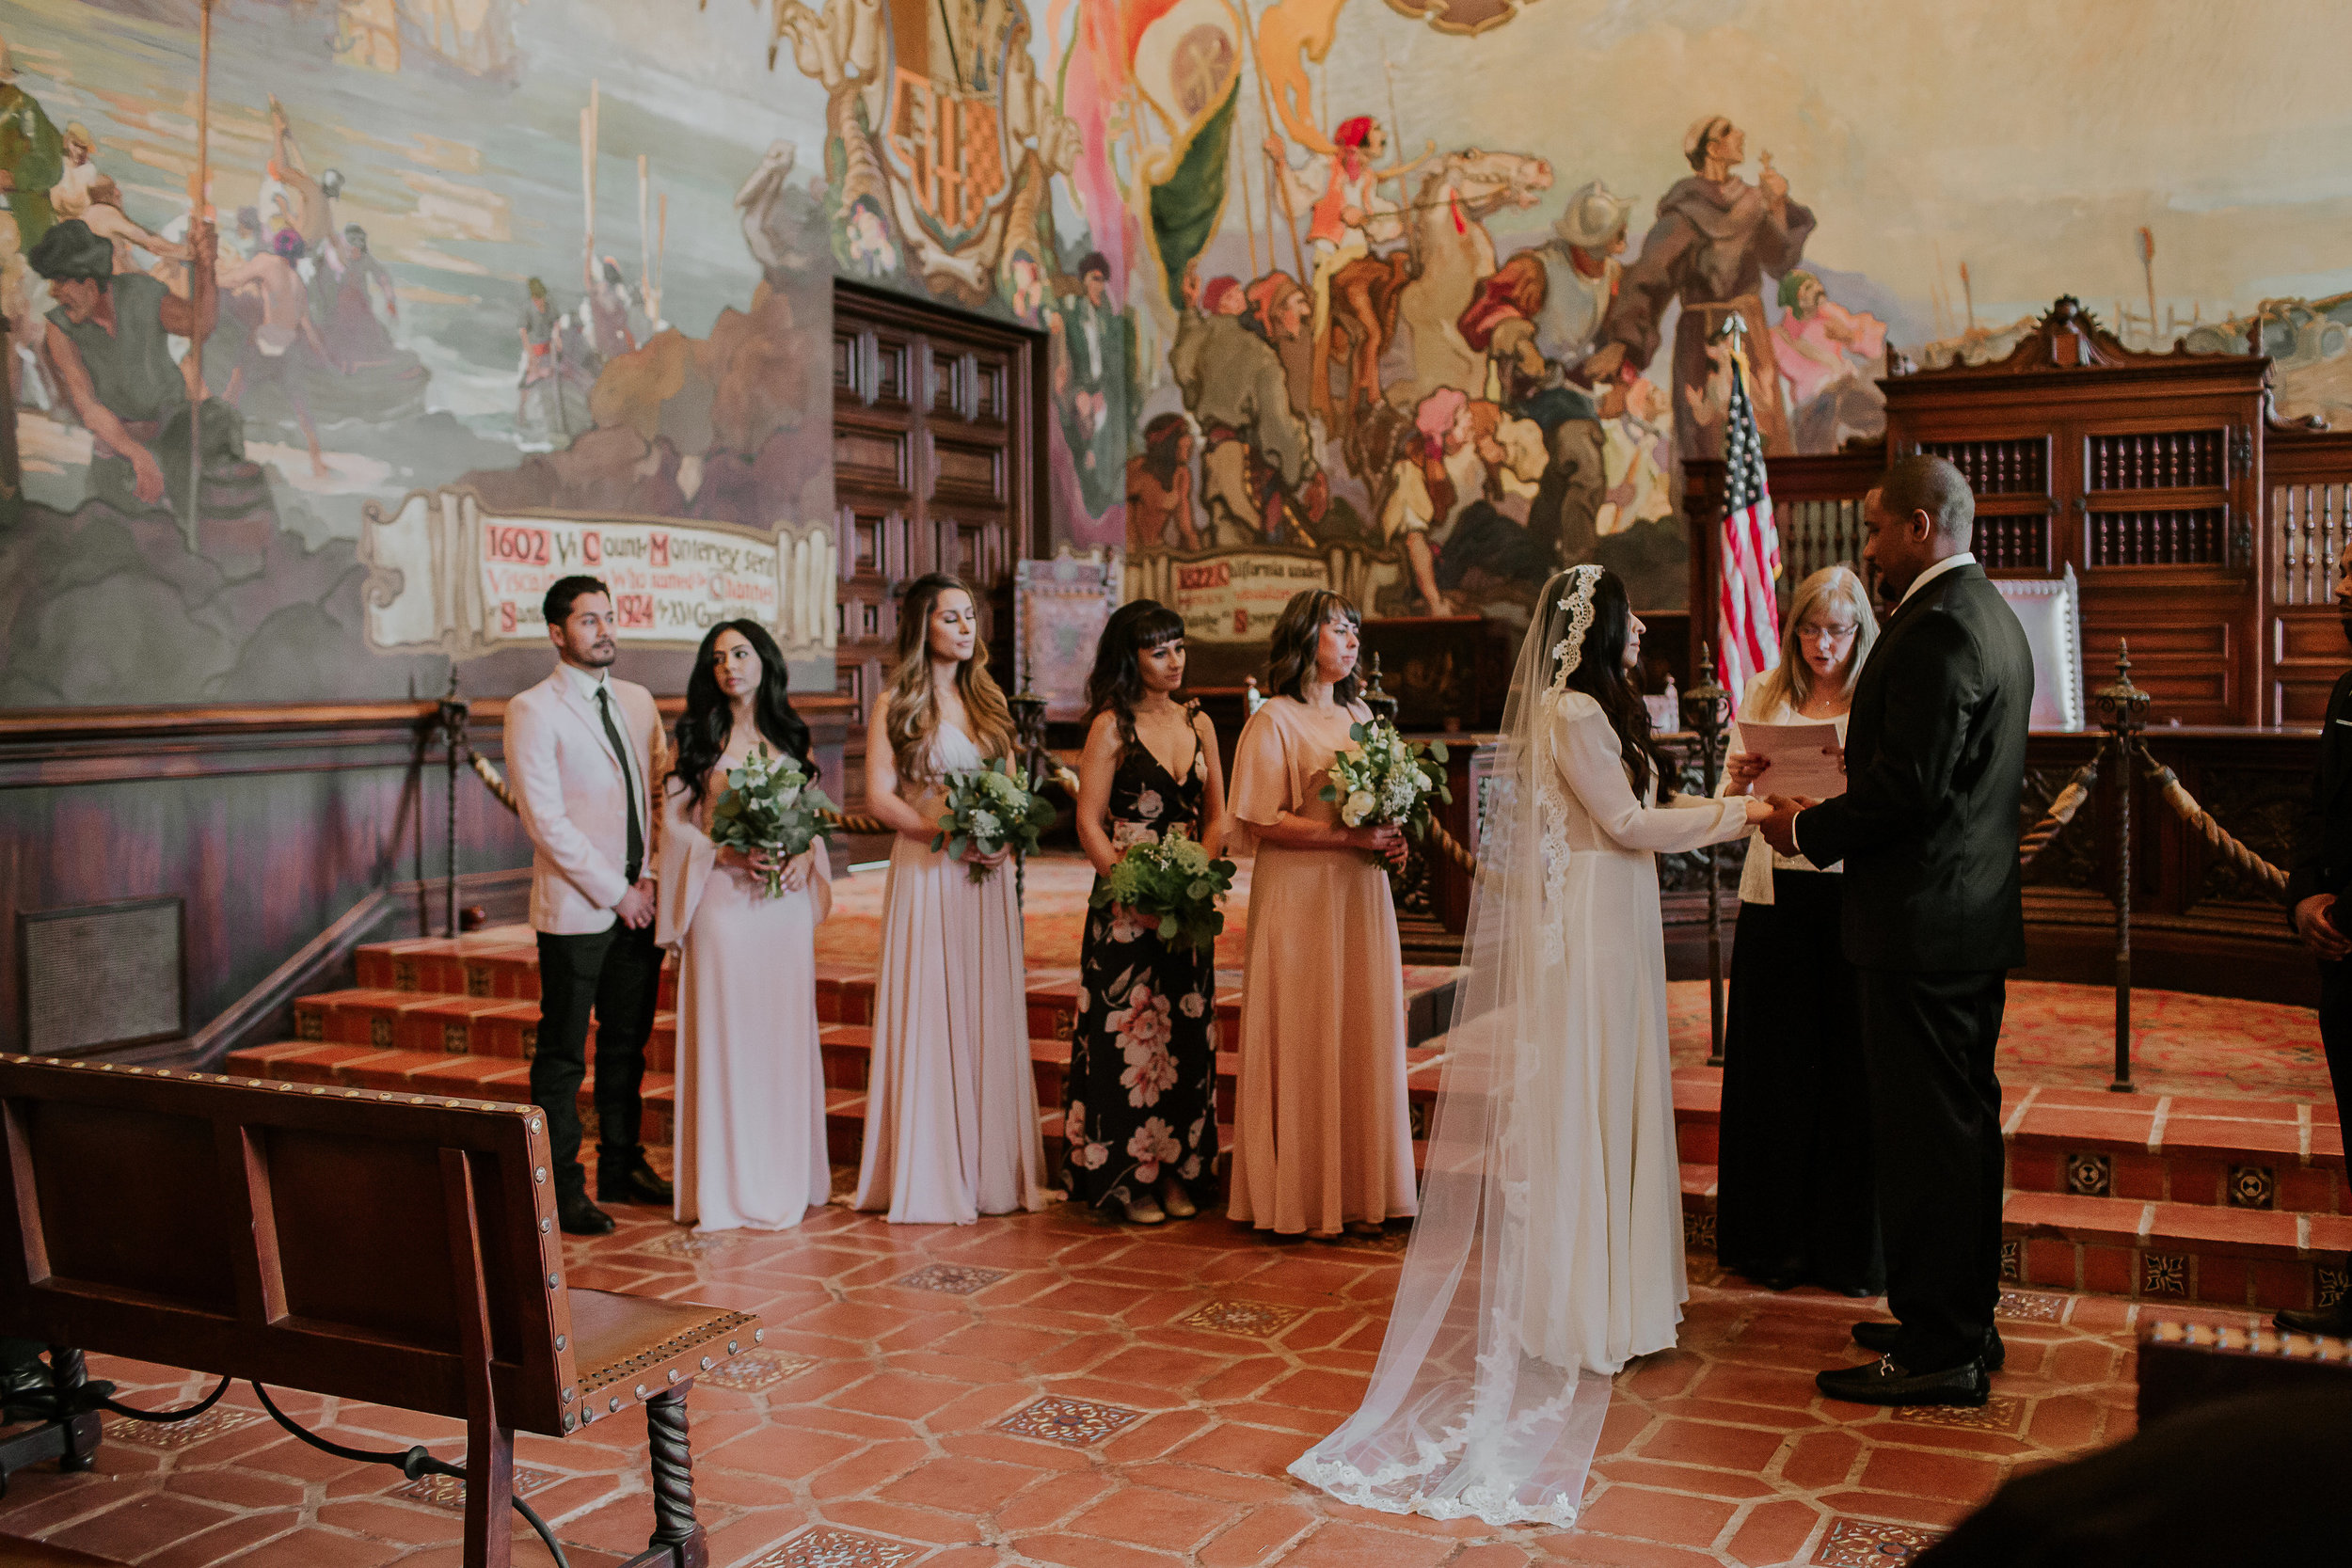 GabrielaandDeJuansantabarbaracourthouseweddingstellamaresweddingelopement-147.jpg